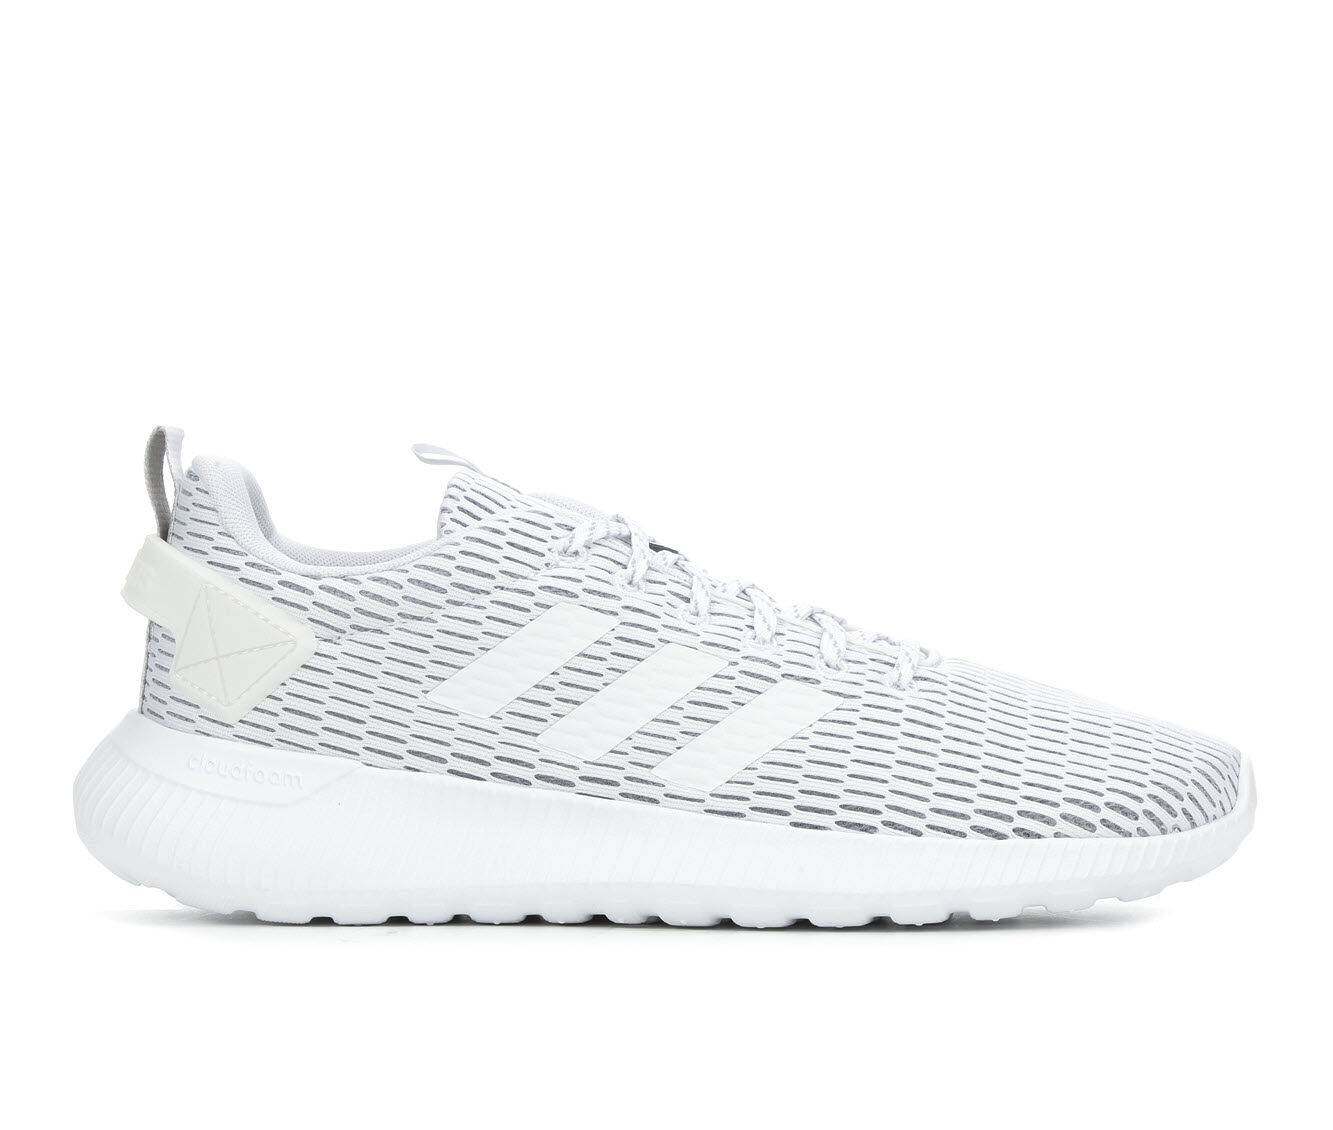 hot sale Men's Adidas Lite Racer Climacool Sneakers White/White/Gry